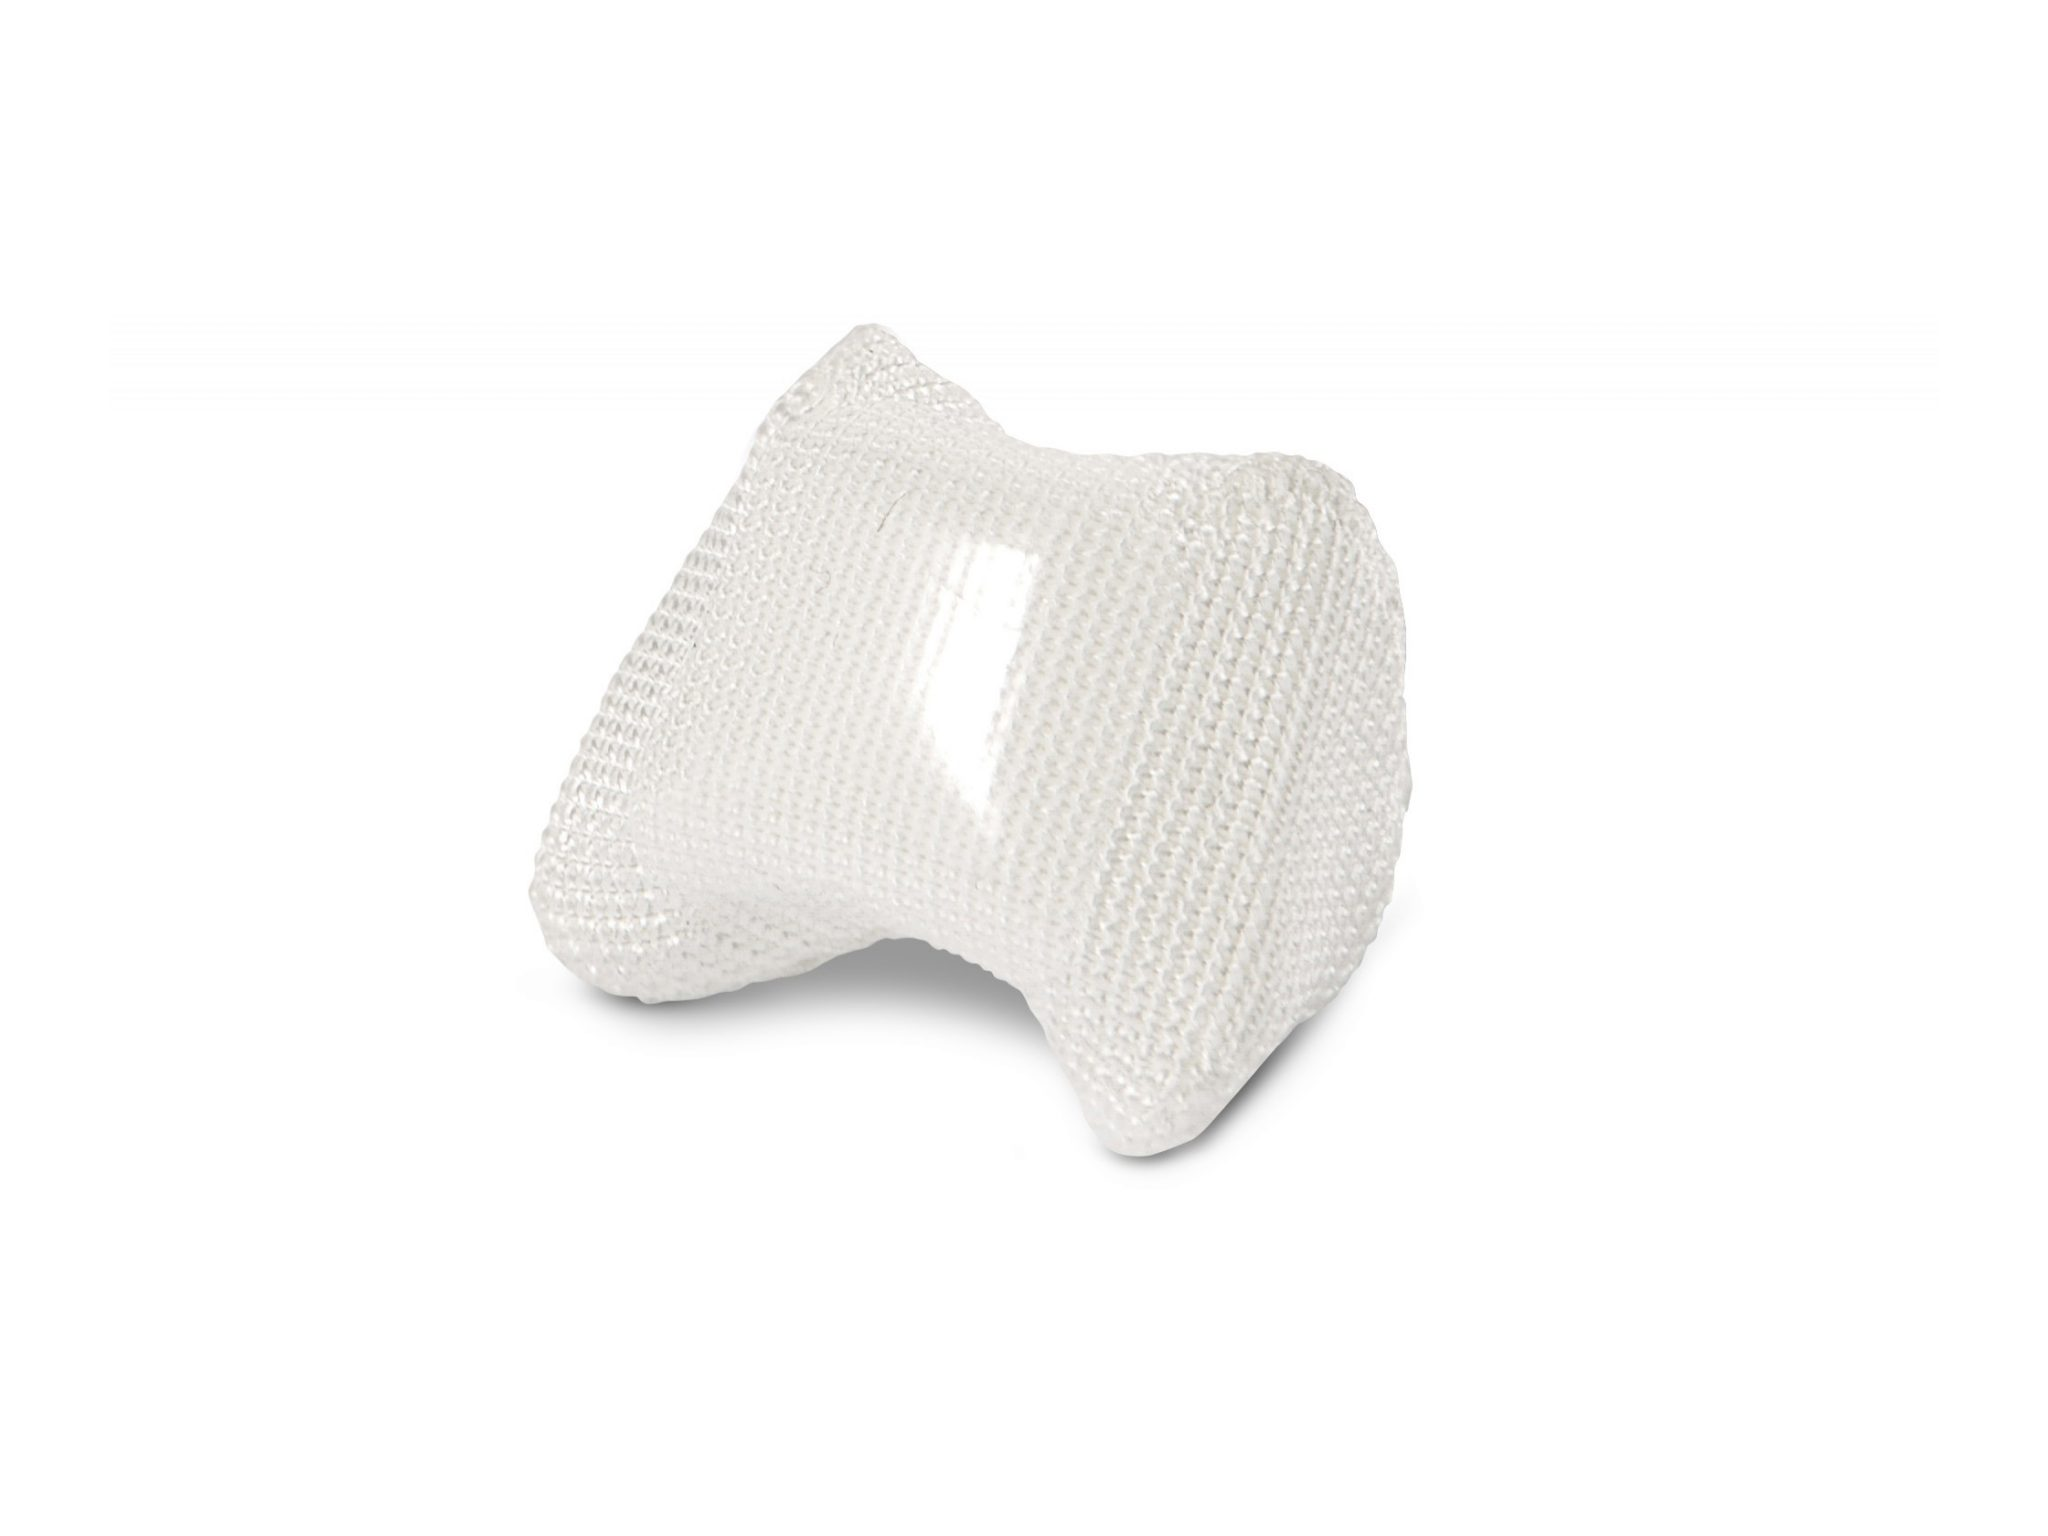 Cousin Surgery Intraspine® Implant - Device for the interspinous space with laminar support.